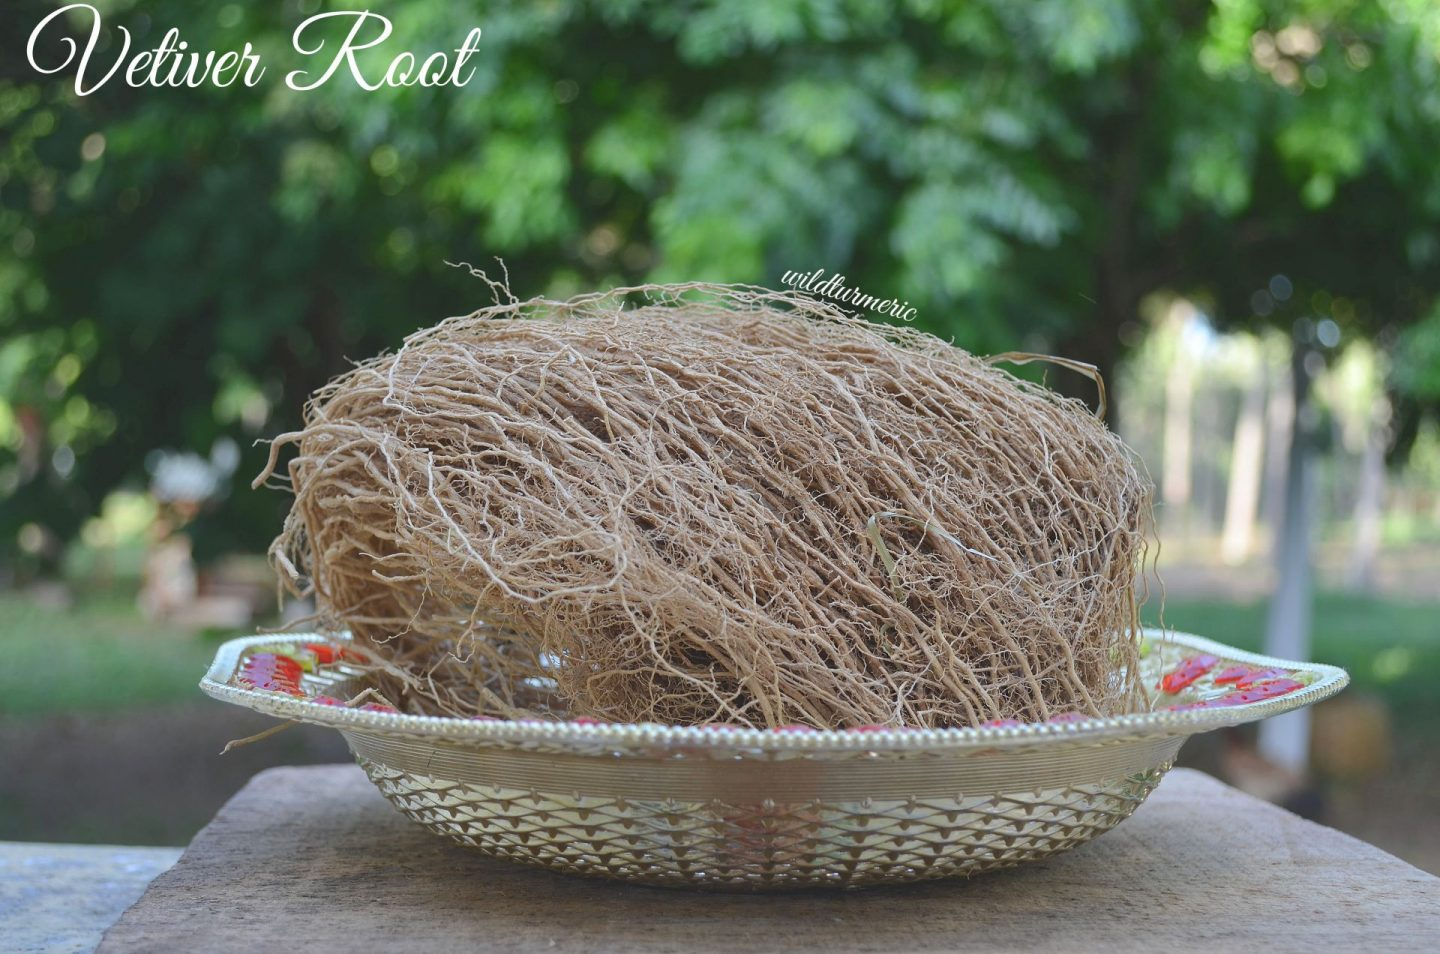 Vetiver Health Benefits